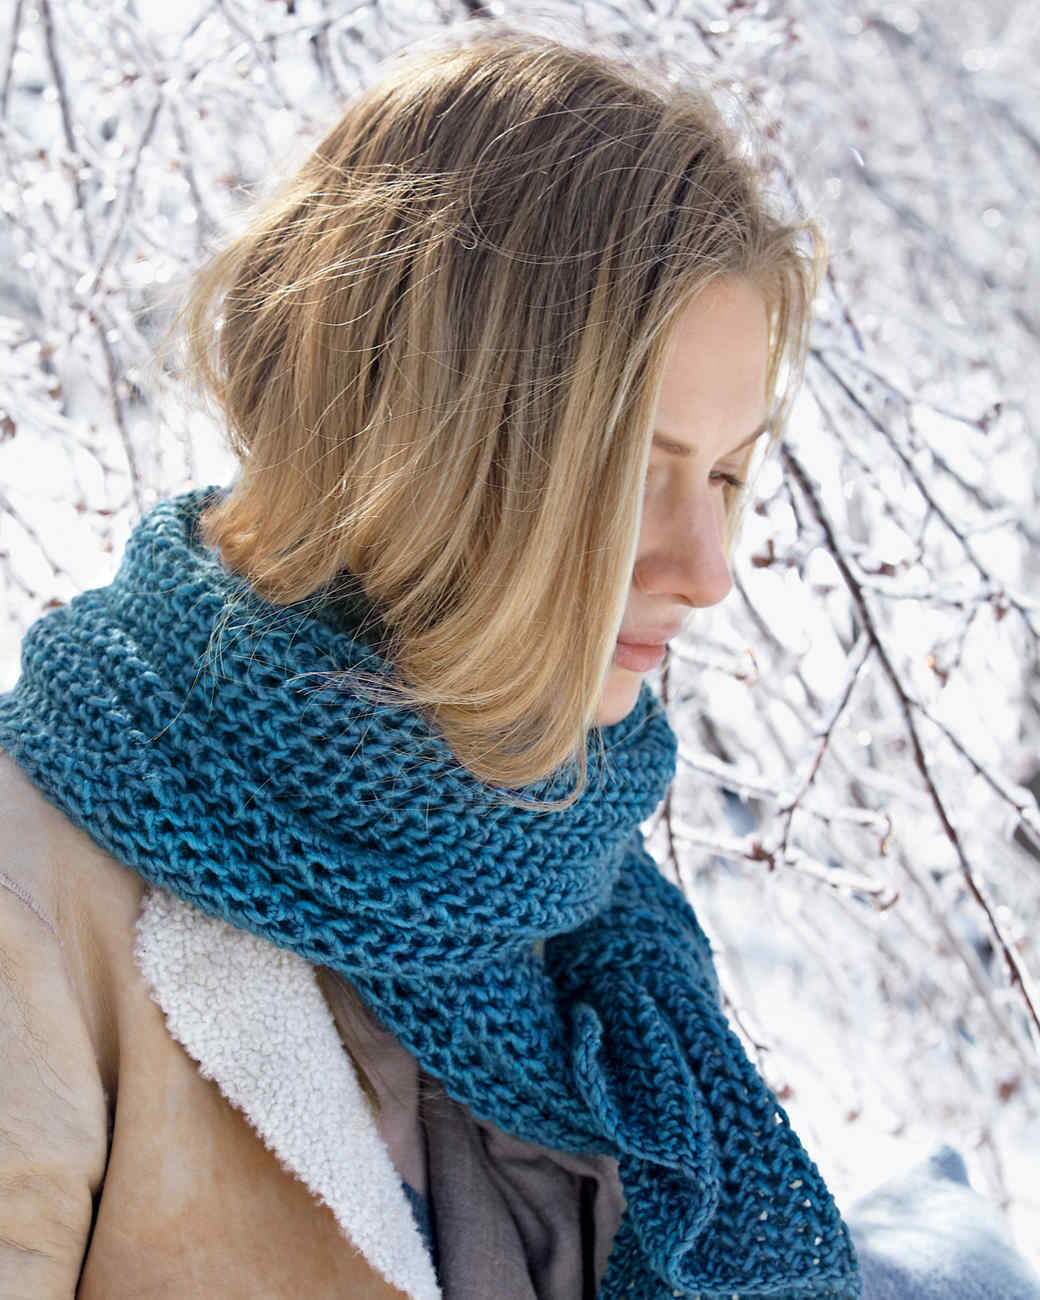 Knitting Scarves For Beginners (Learn How to Knit) - Kindle edition by Olivia Clark. Download it once and read it on your Kindle device, PC, phones or tablets. Use features like bookmarks, note taking and highlighting while reading Knitting Scarves For Beginners (Learn How to Knit).Reviews: 5.